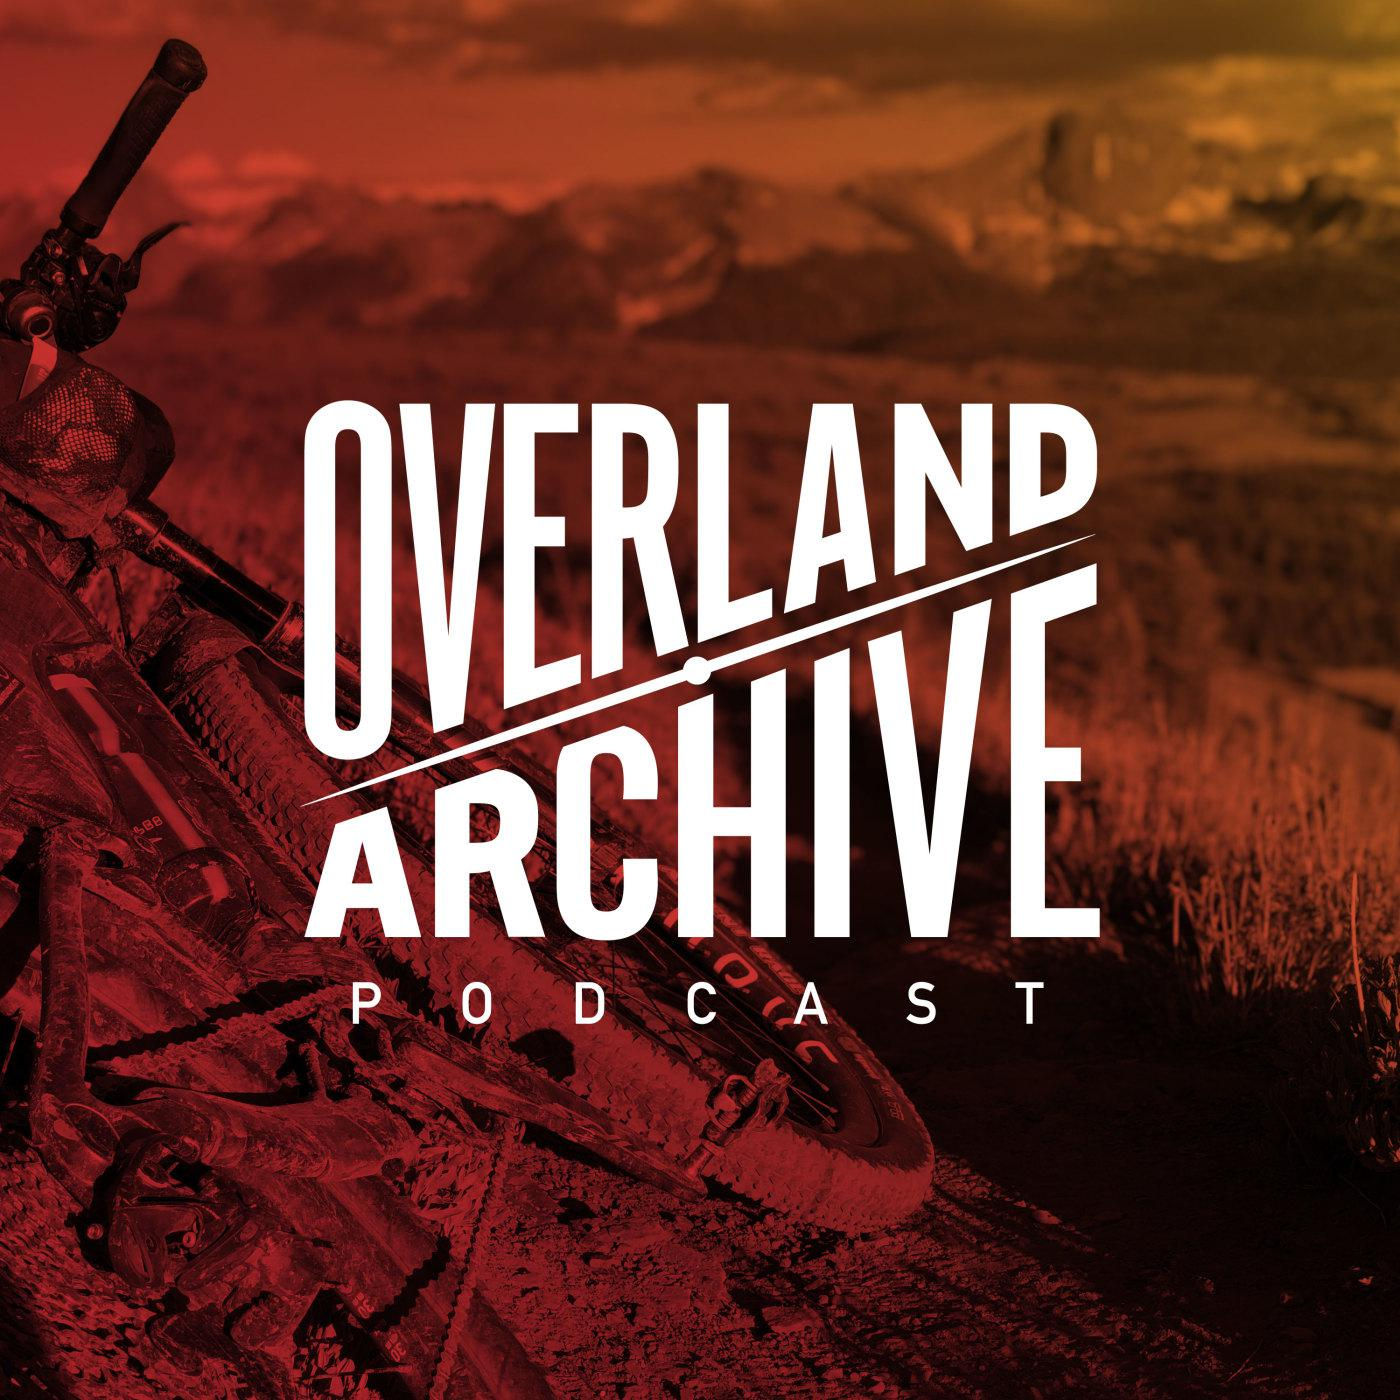 The overland archive